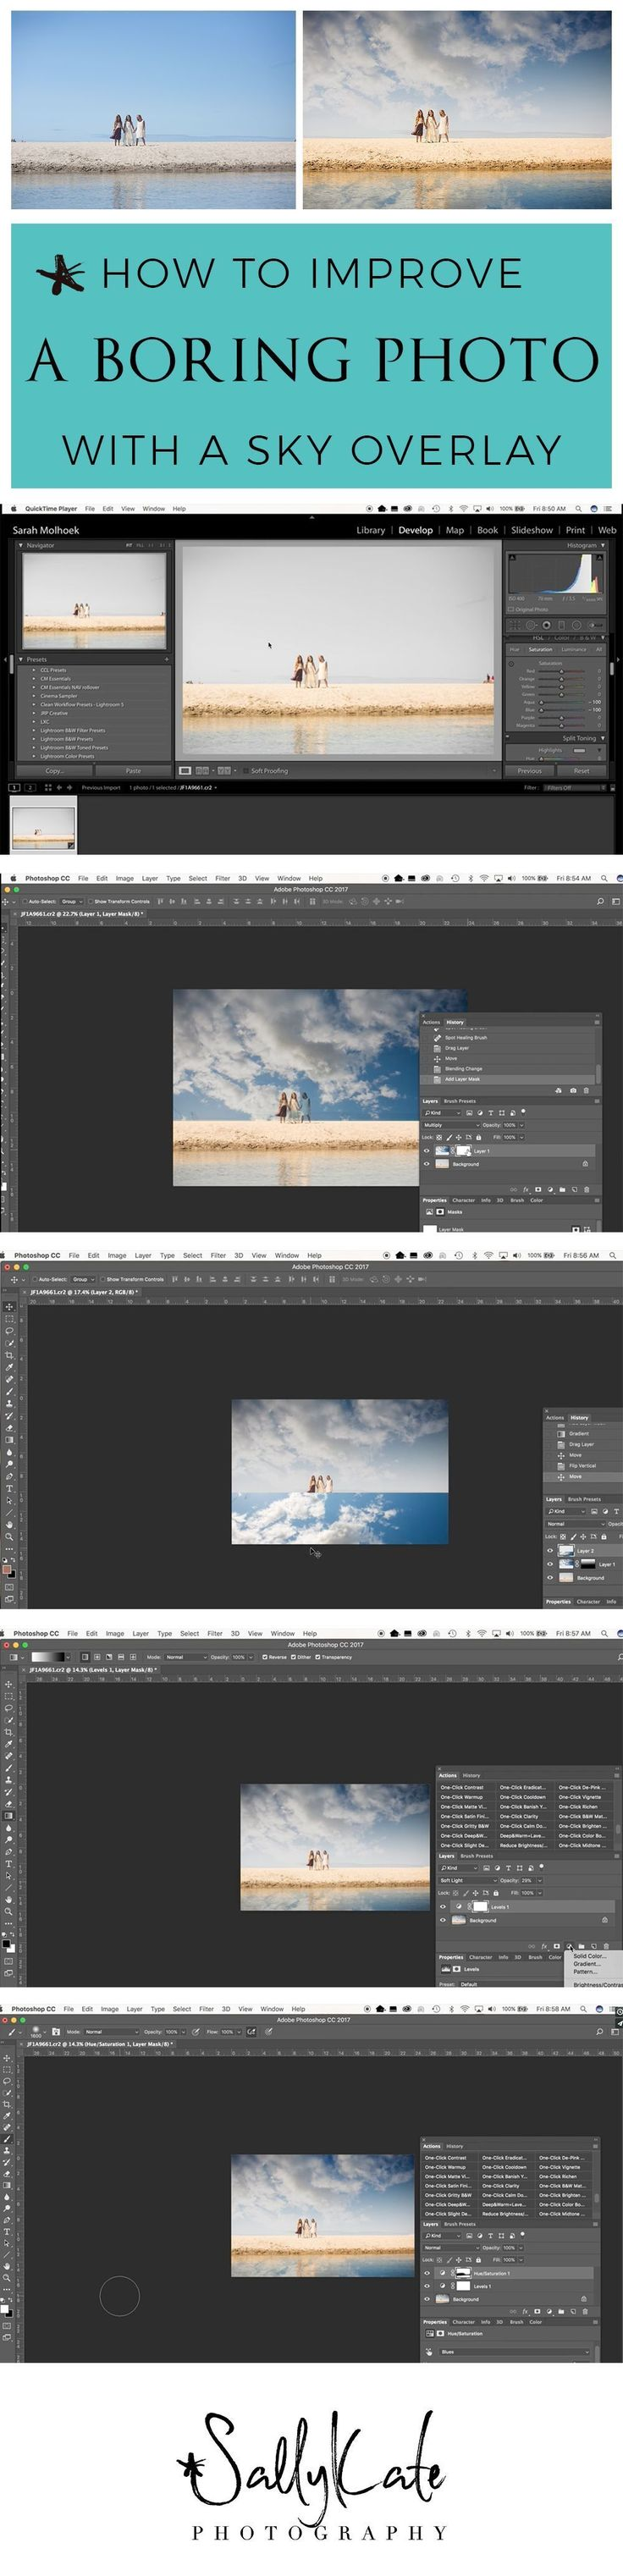 How to Improve a Boring Photo with a Sky Overlay in Photoshop | Photoshop Tutorials | Tips and Tricks for Photoshop | Photoshop for Beginners | Portrait Editing Tips for Photoshop | www.sallykatephotography.com